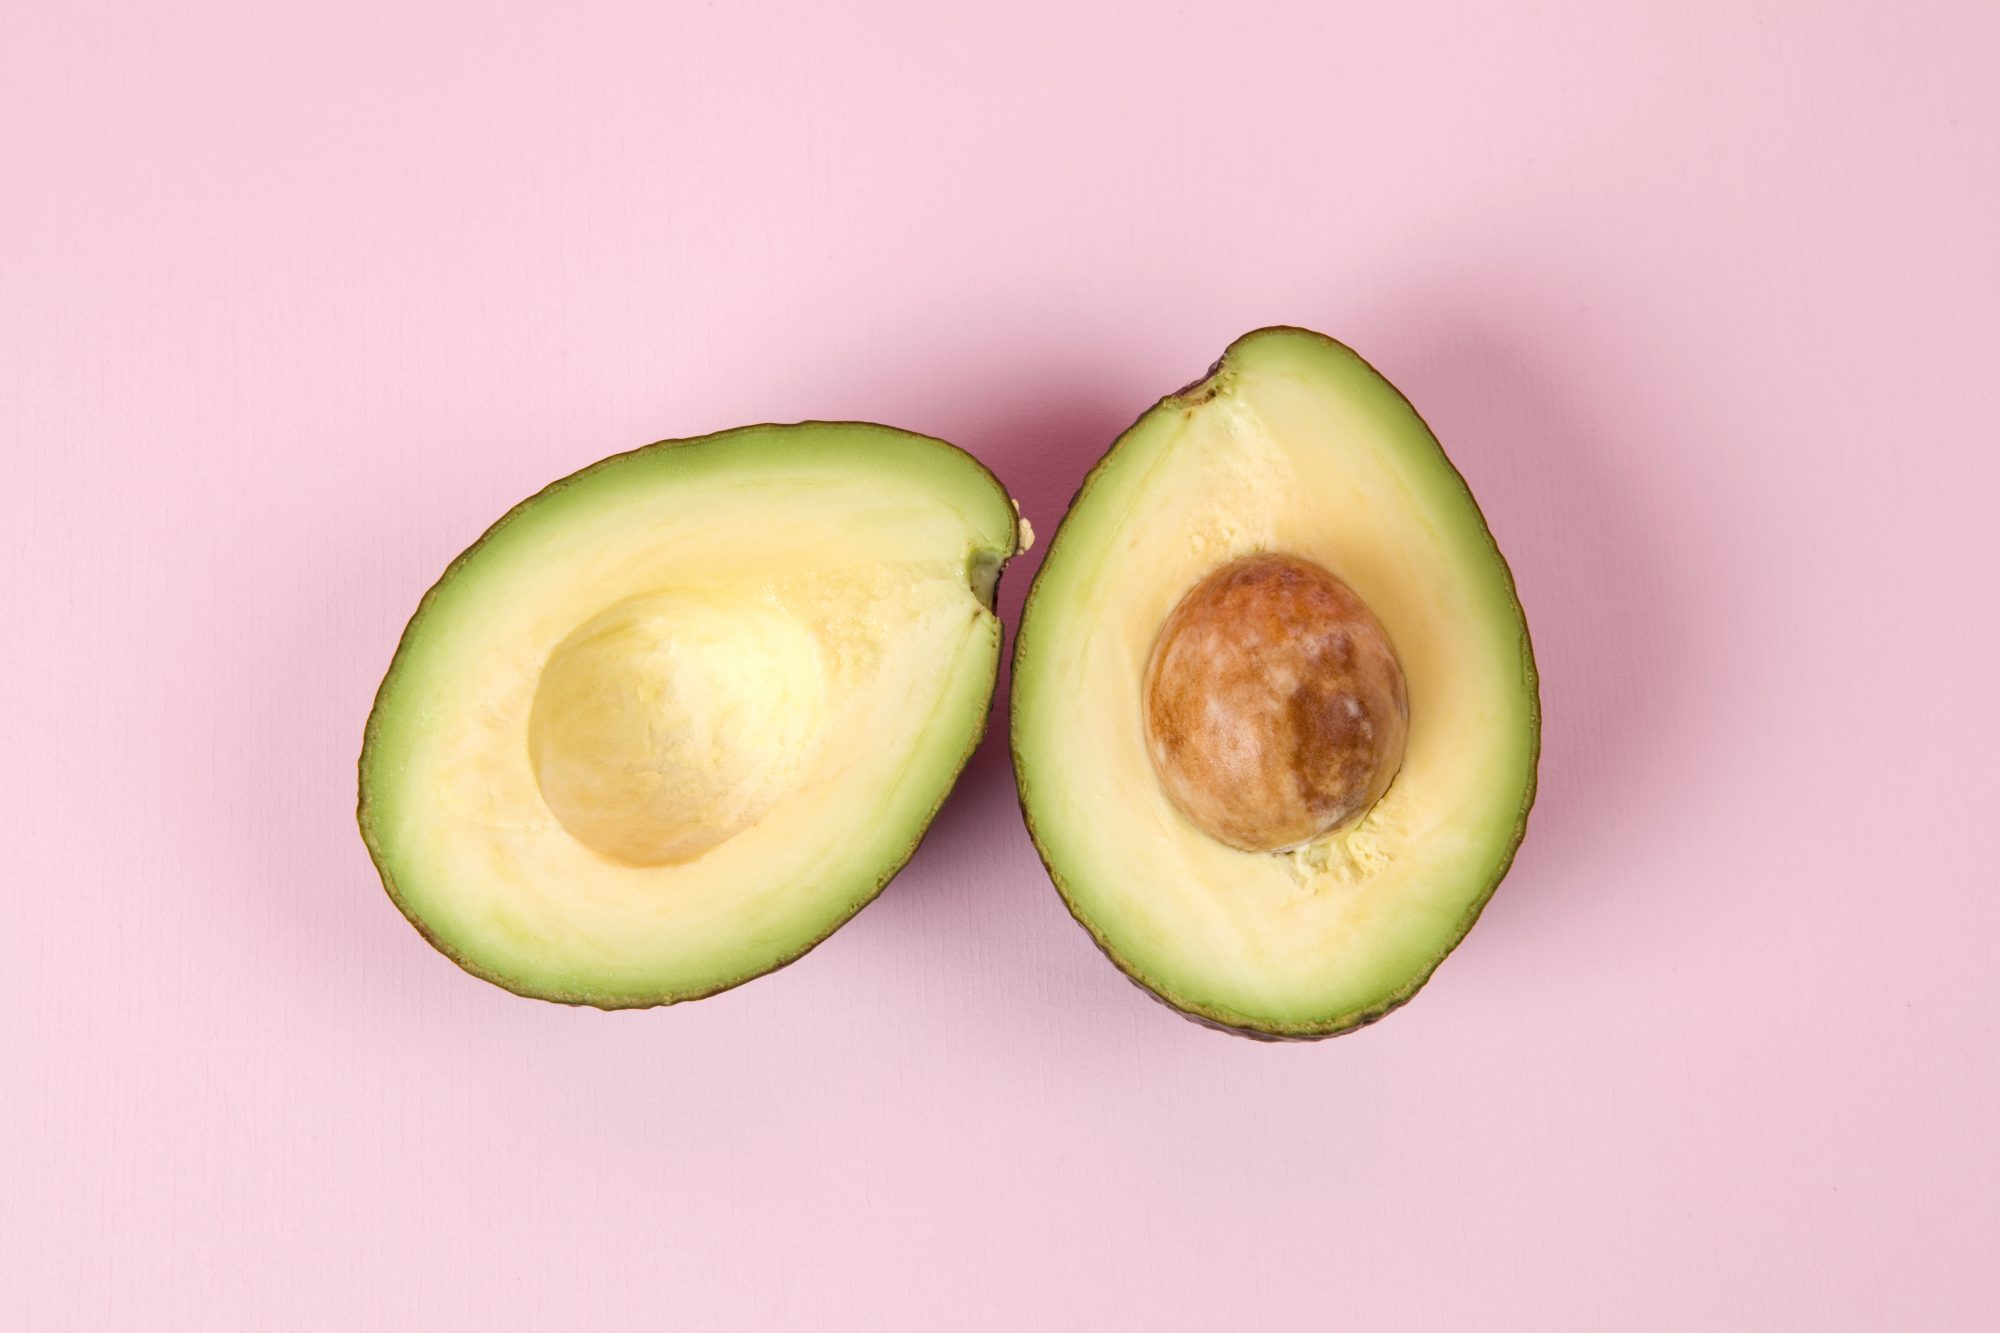 How to Use Avocados to Dye Stuff Millennial Pink